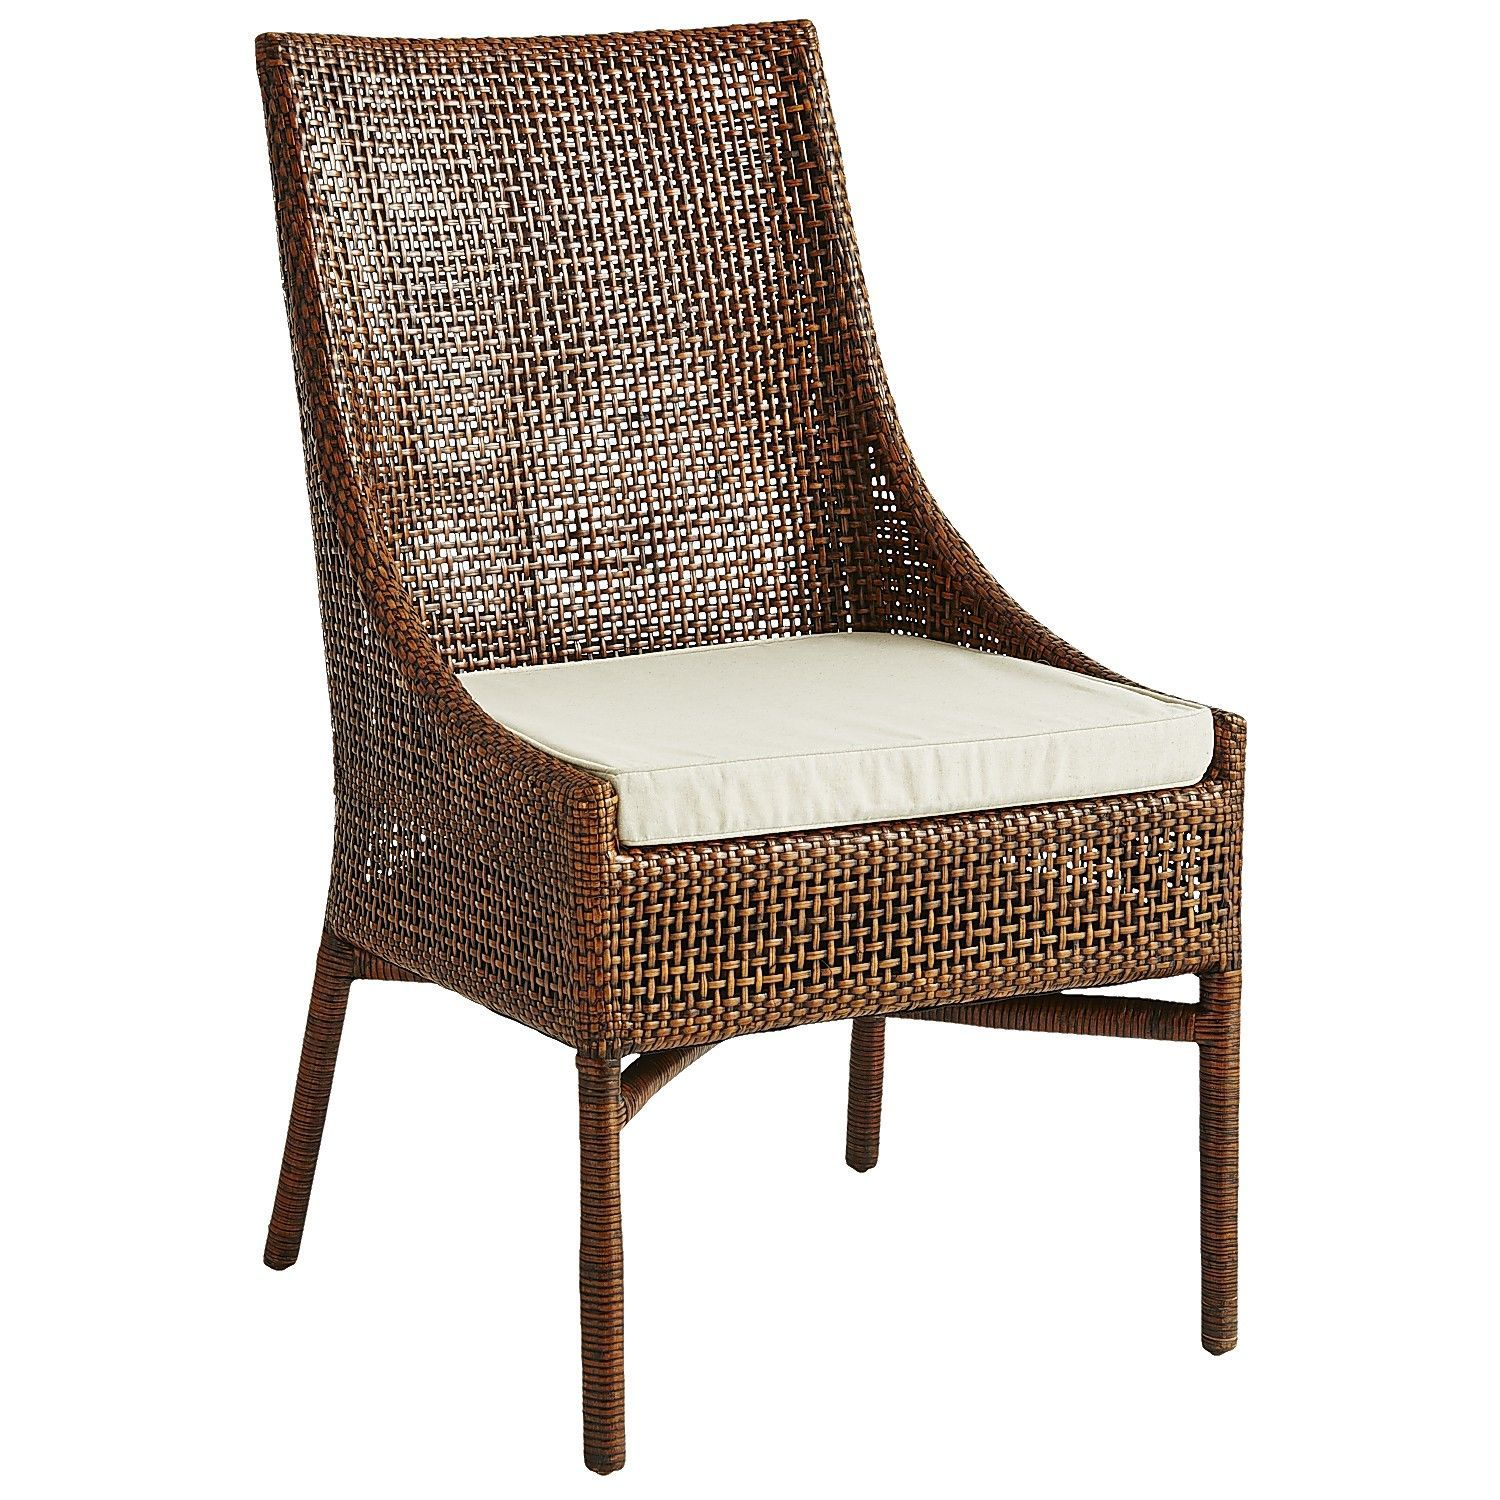 Httpwwwpier1Malaccadiningchair2779143Defaultpdhtml Fair Dining Room Chairs Pier One Review